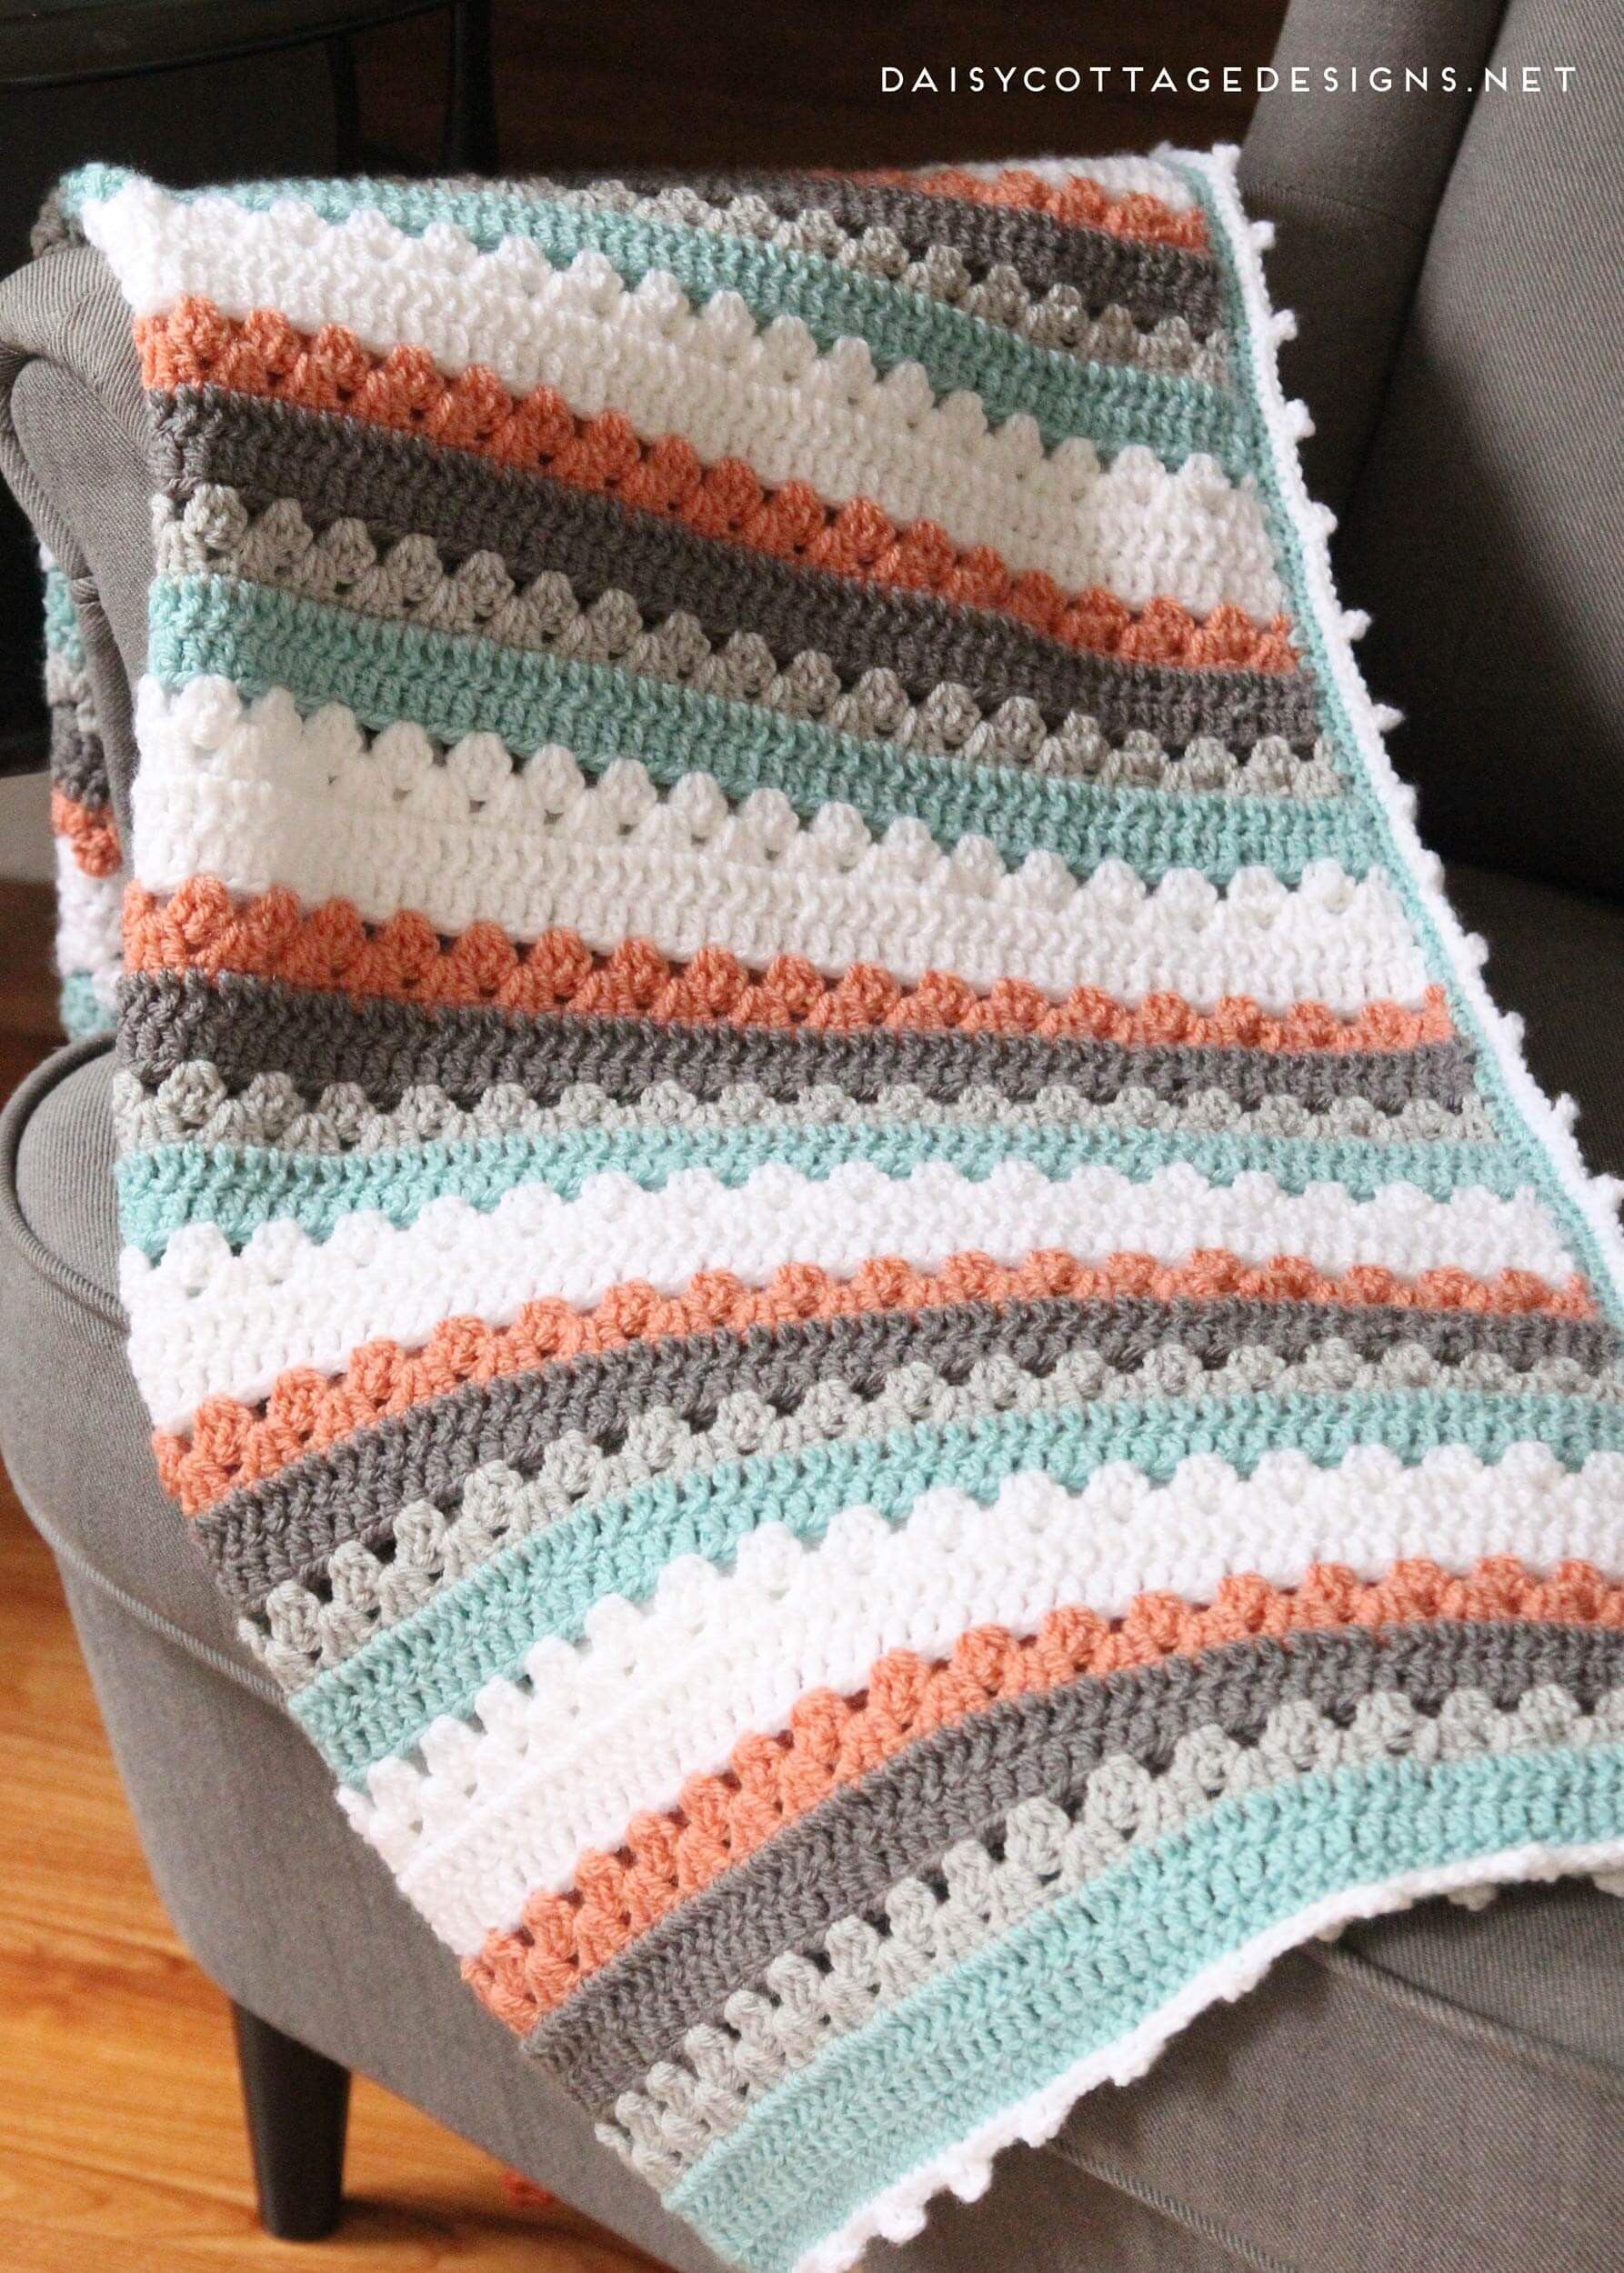 Easy Crochet Throw Patterns Elegant Crochet Blanket Pattern A Quick & Simple Pattern Daisy Of New 47 Pictures Easy Crochet Throw Patterns